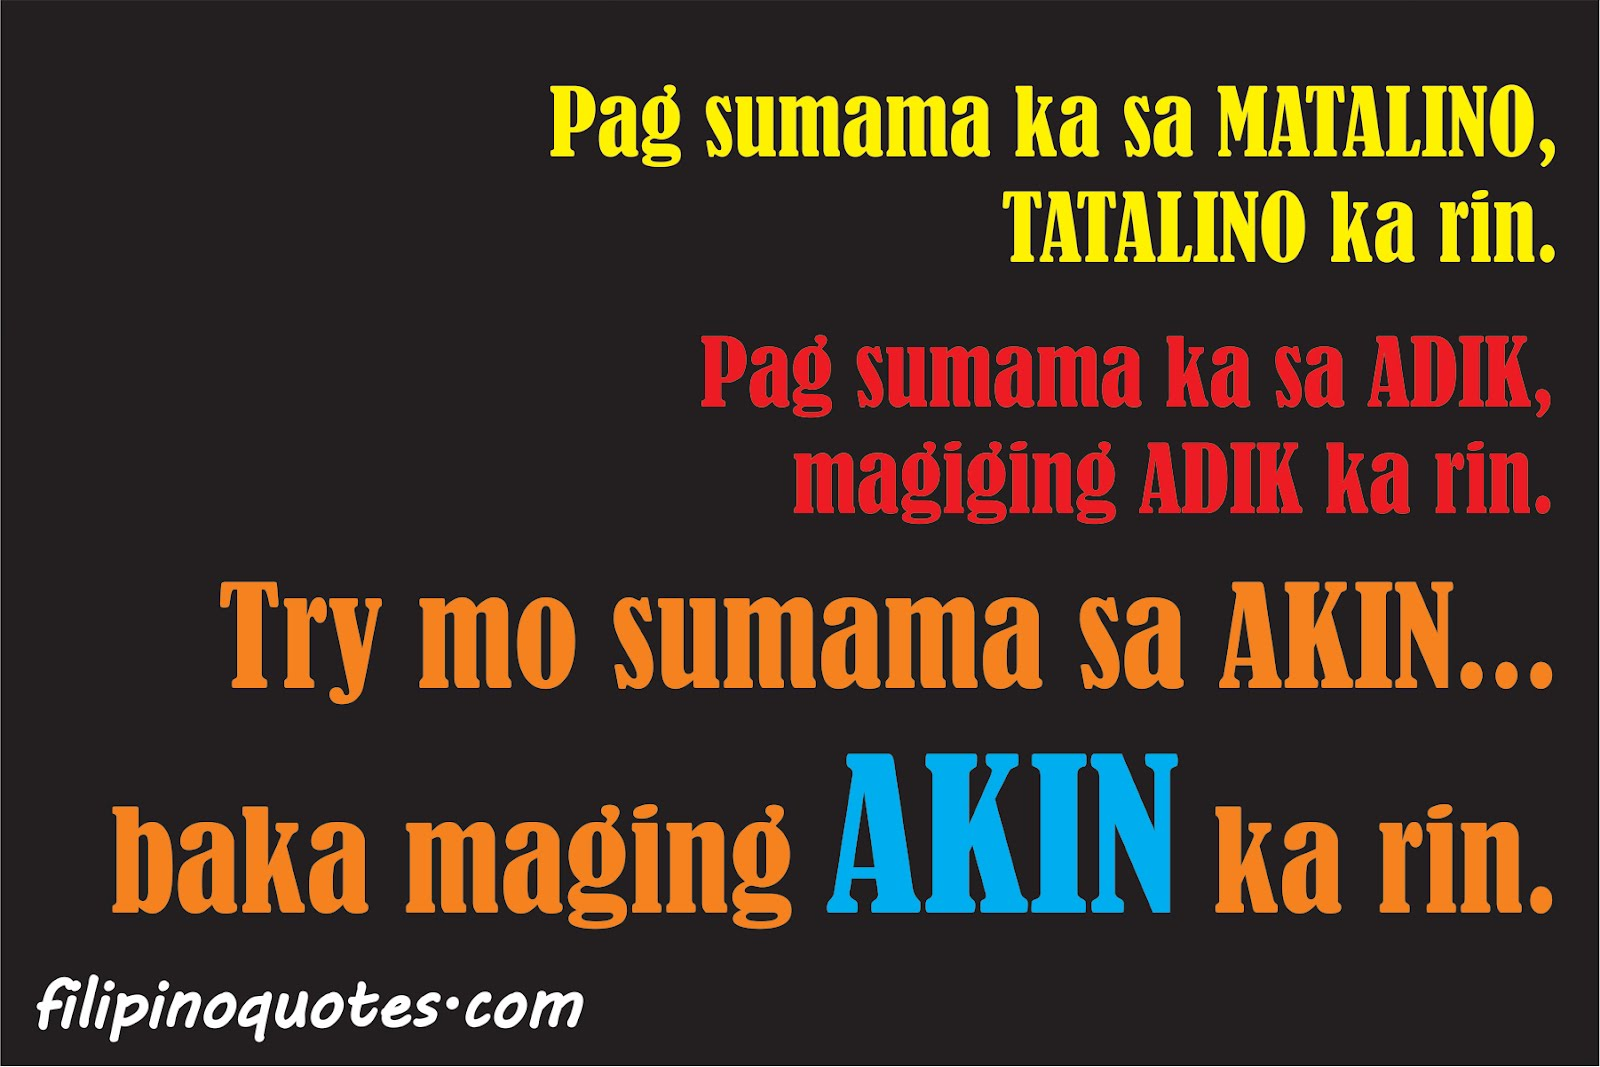 Filipino Funny Love Quotes : Tagalog Banat Love Quotes 2012 - Tagalog Love Quotes